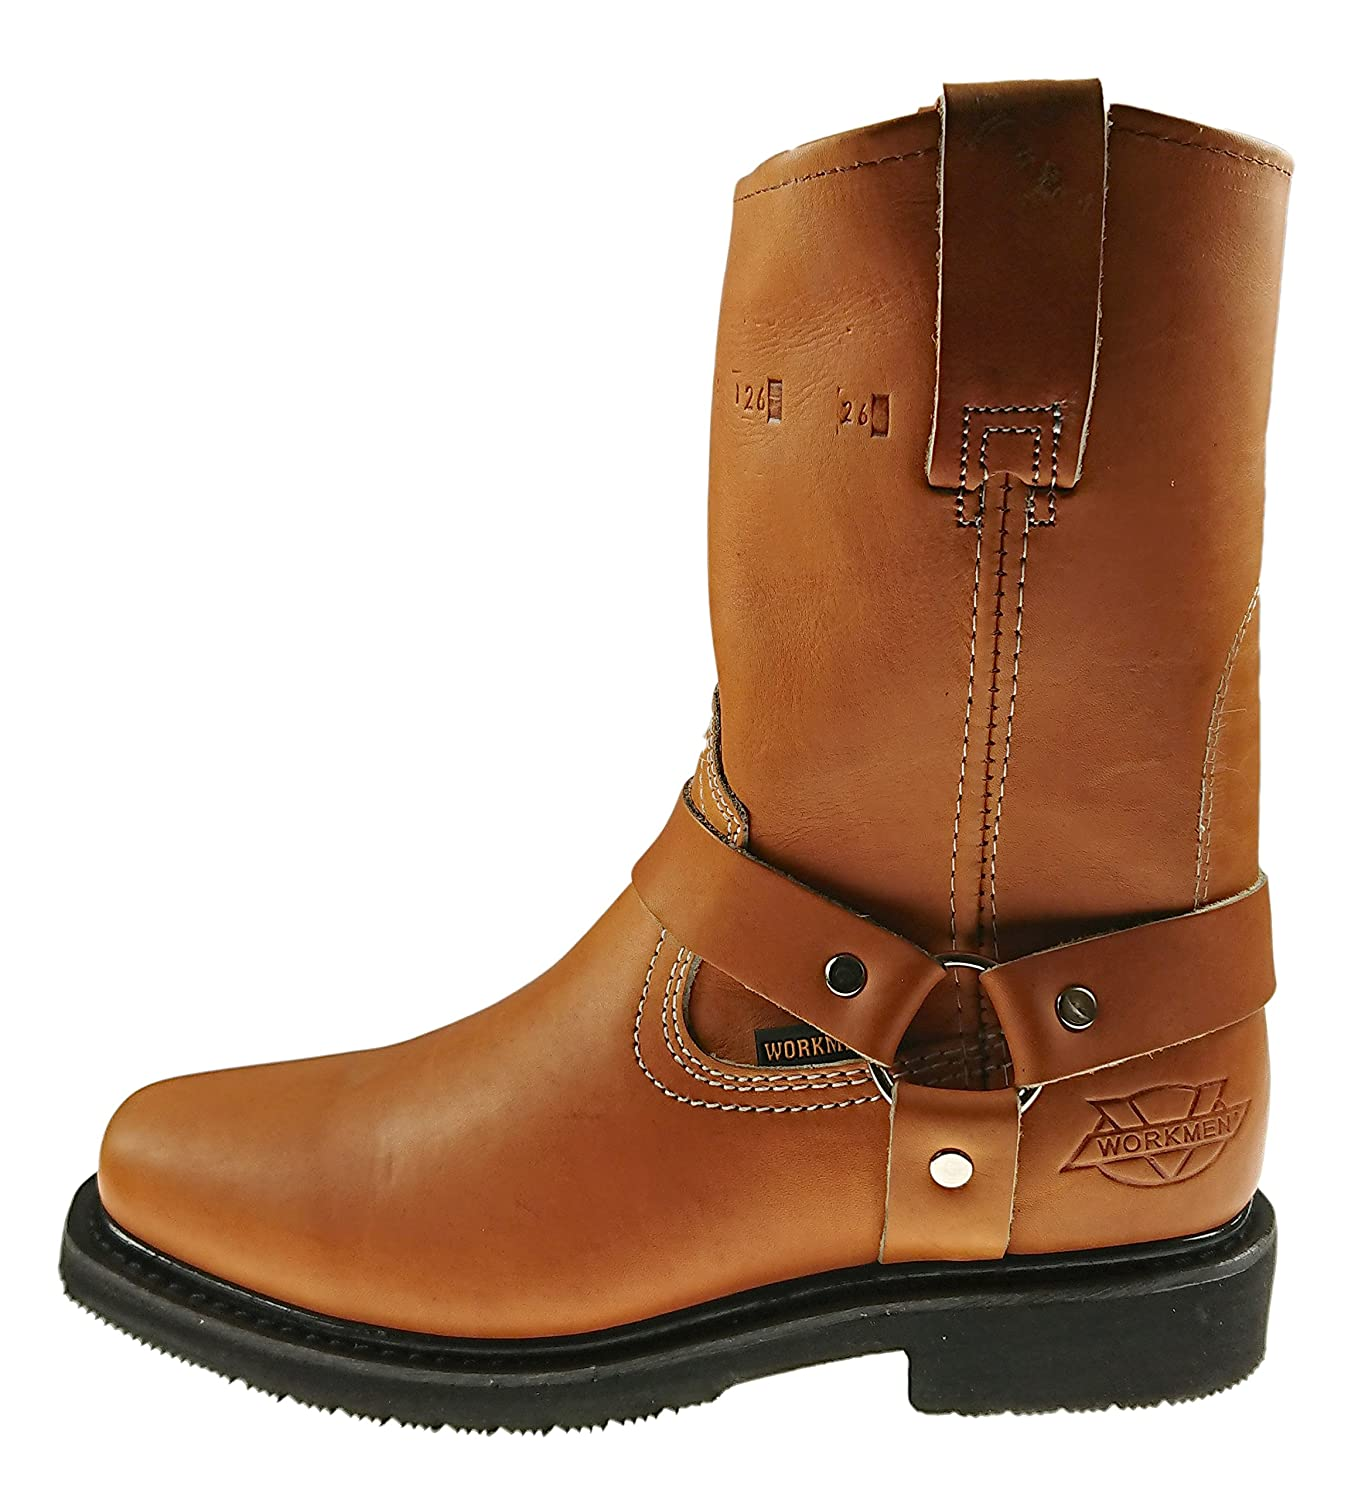 Mens Work Boots Pull On Biker Style Genuine Leather Honey Brown Black